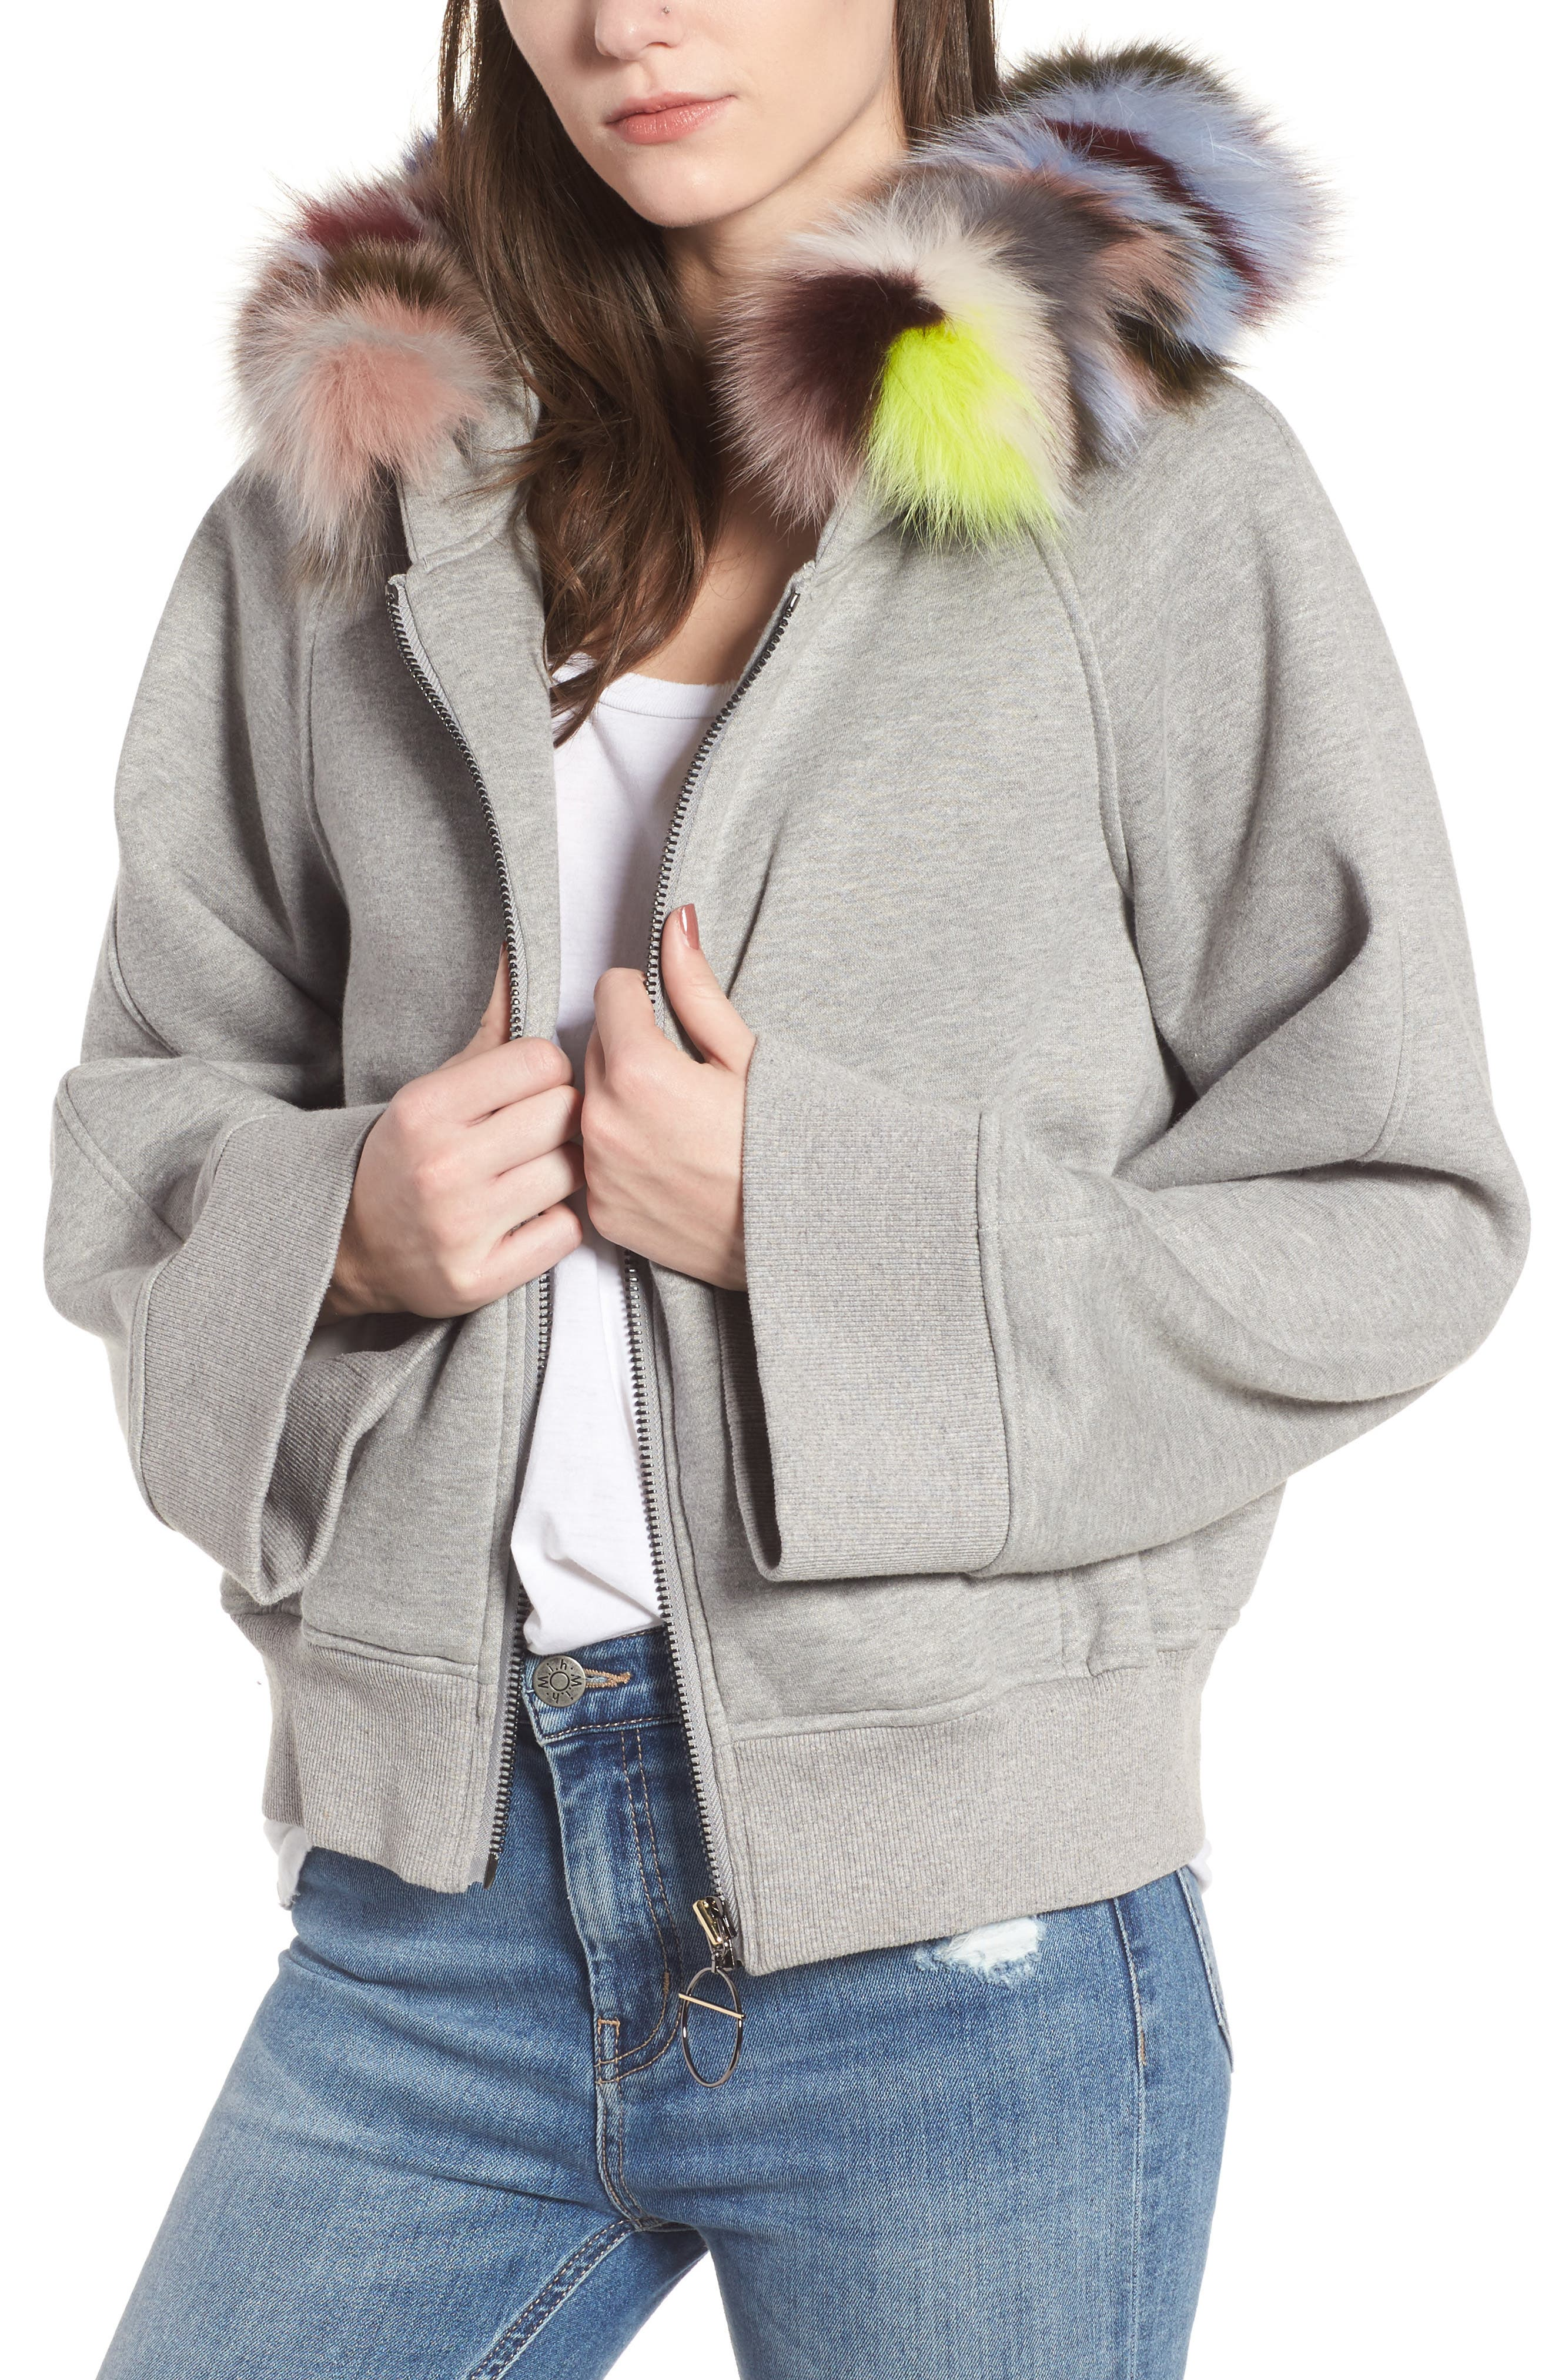 BAGATELLE.CITY The Luxe Hooded Jacket with Genuine Fox Fur Trim,                         Main,                         color,